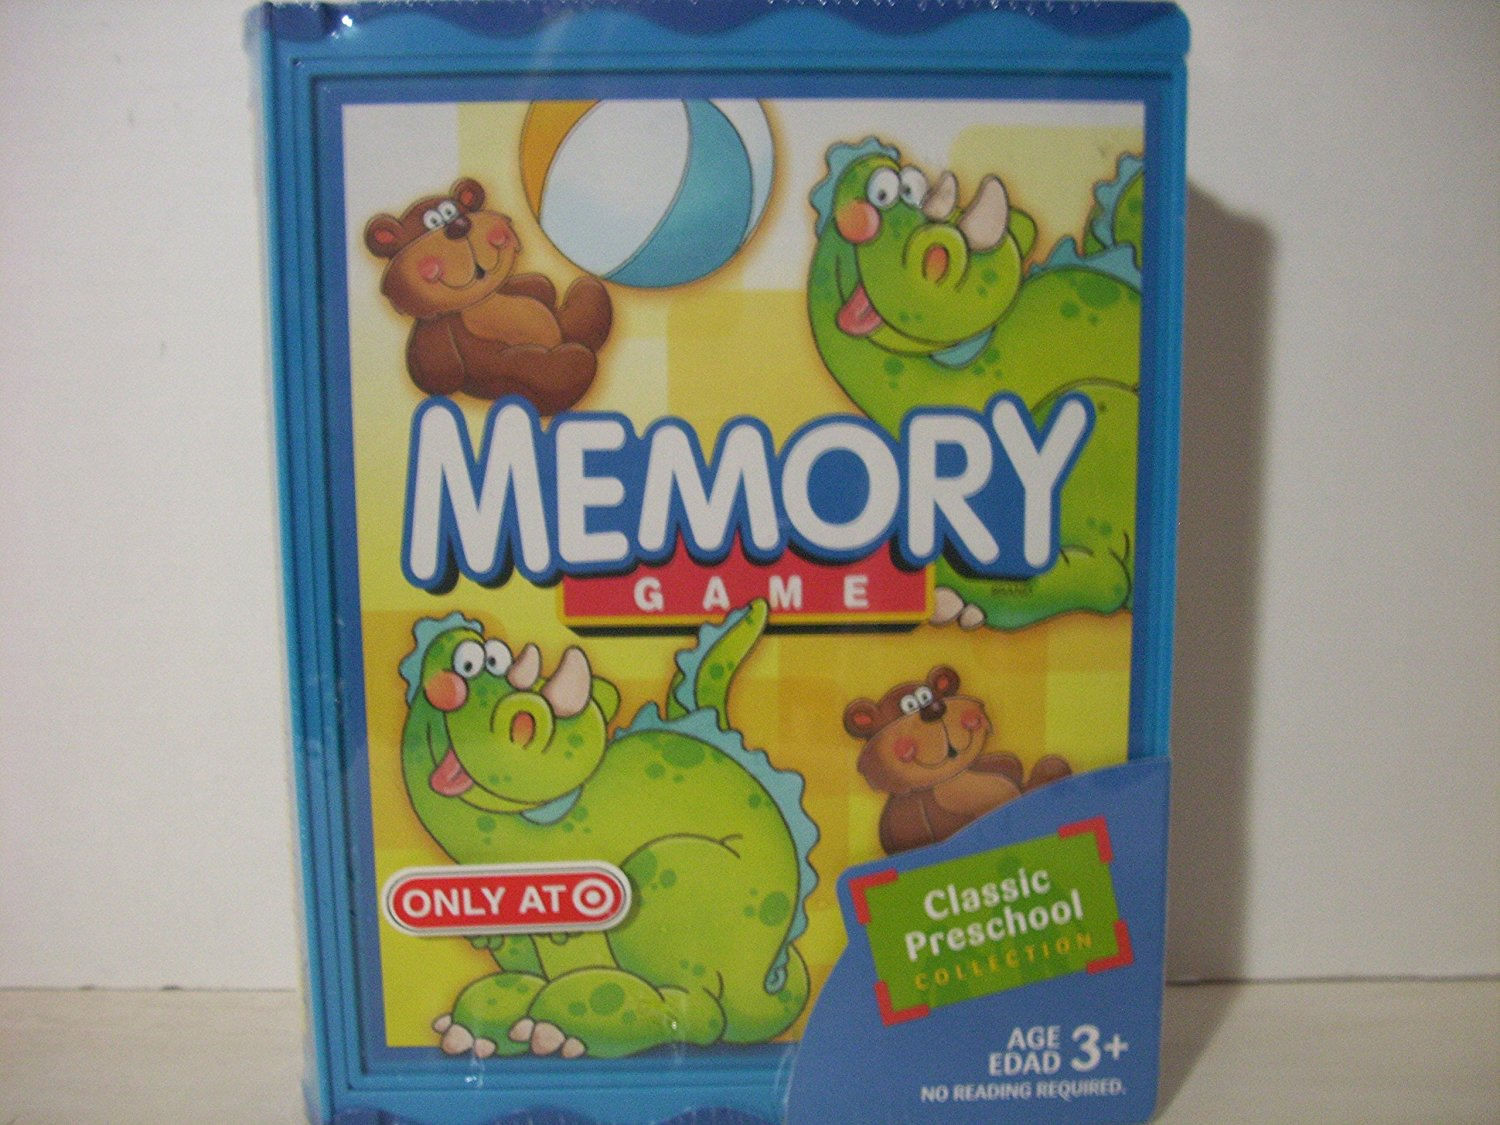 Memory Game Book Series, The classic preschool game of Memory comes in a collectible... by